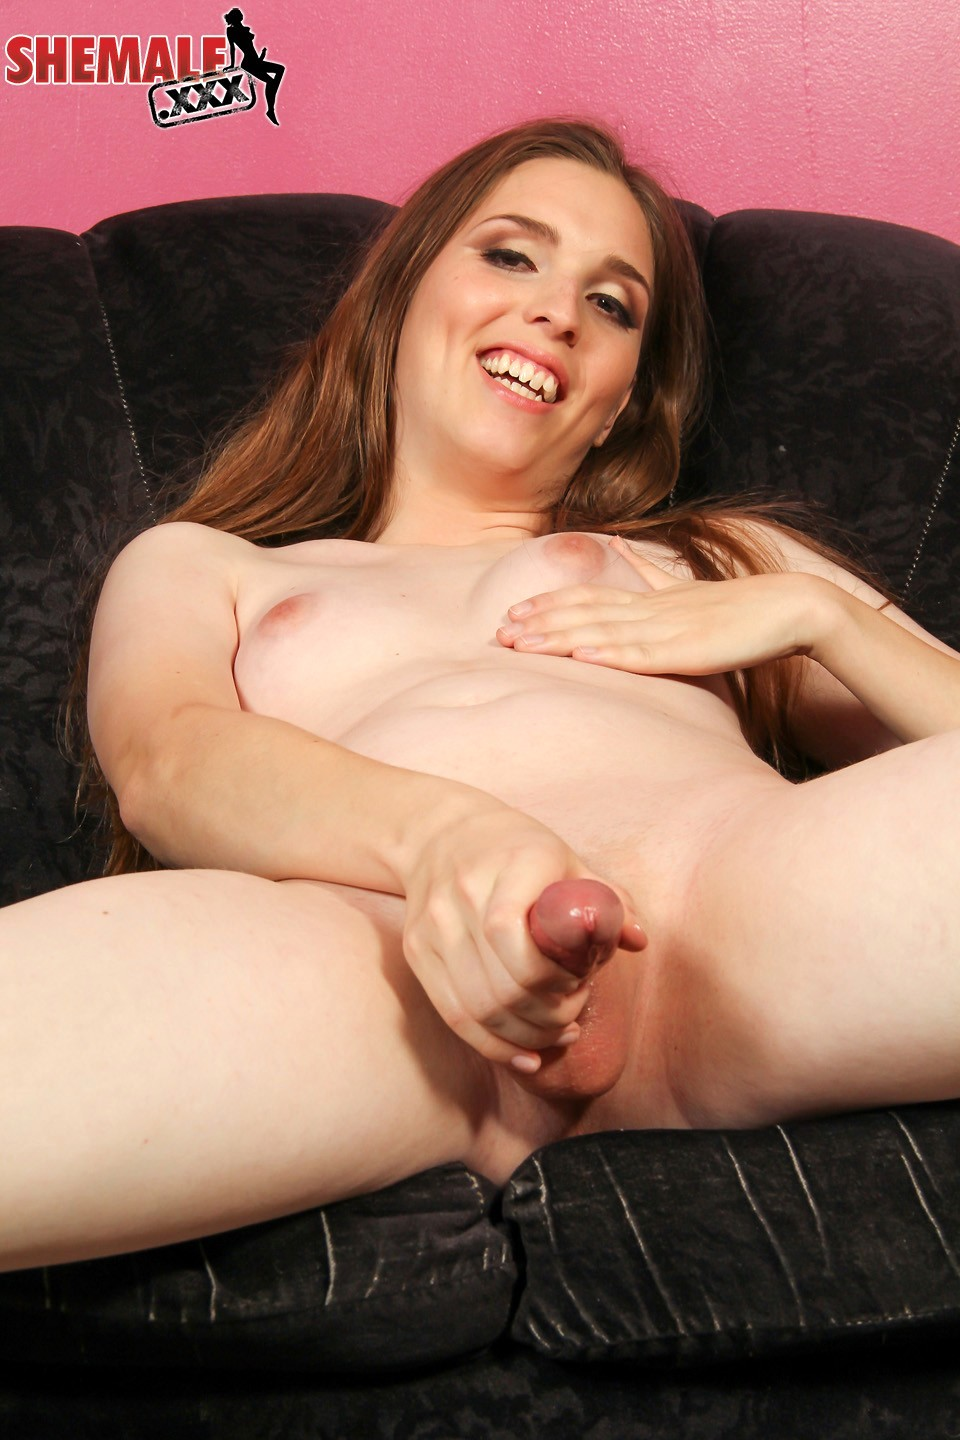 shannon marie stroking her tool